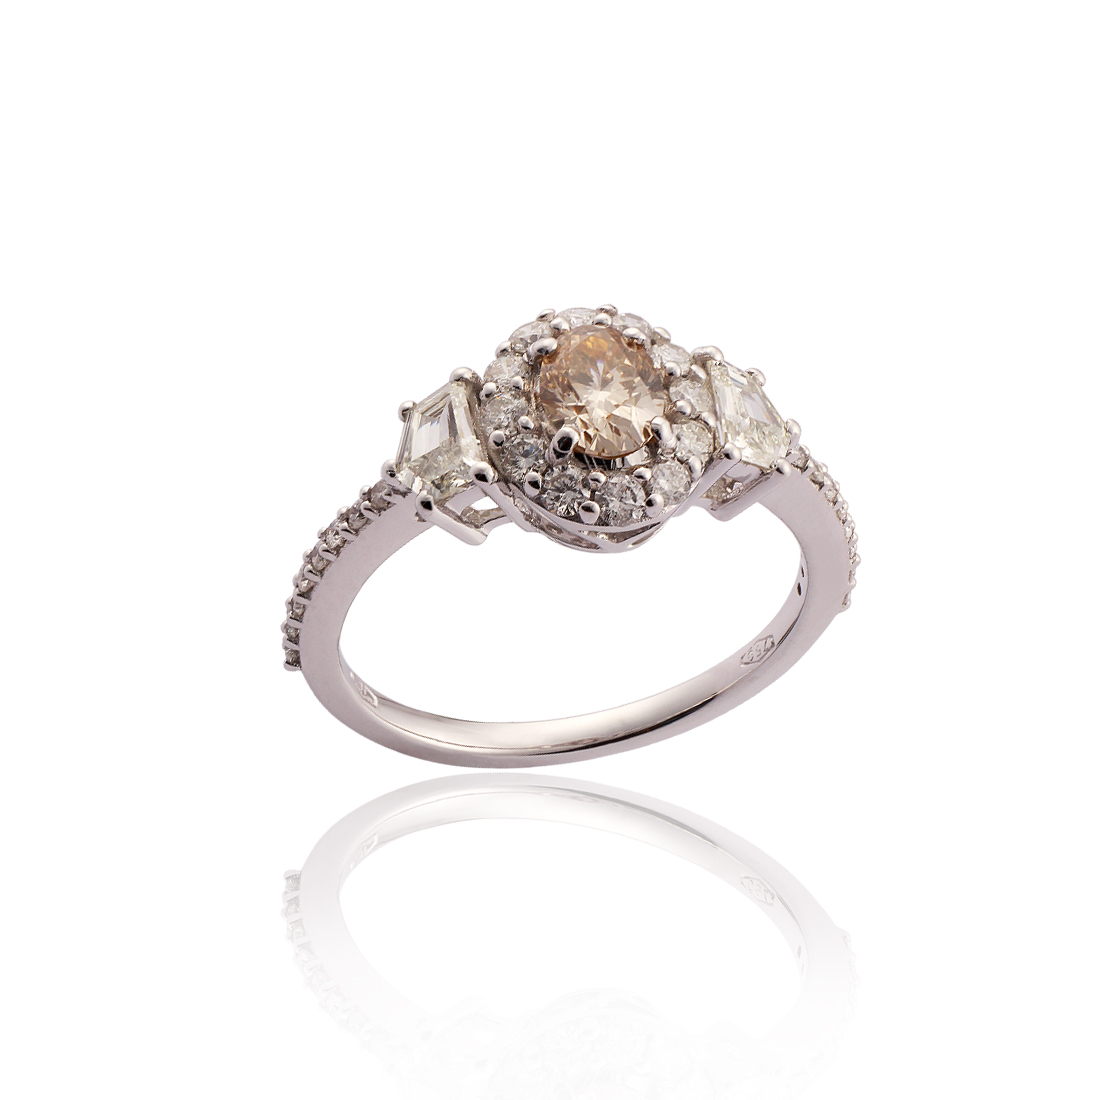 Certified Center Piece Diamond Ring R3205